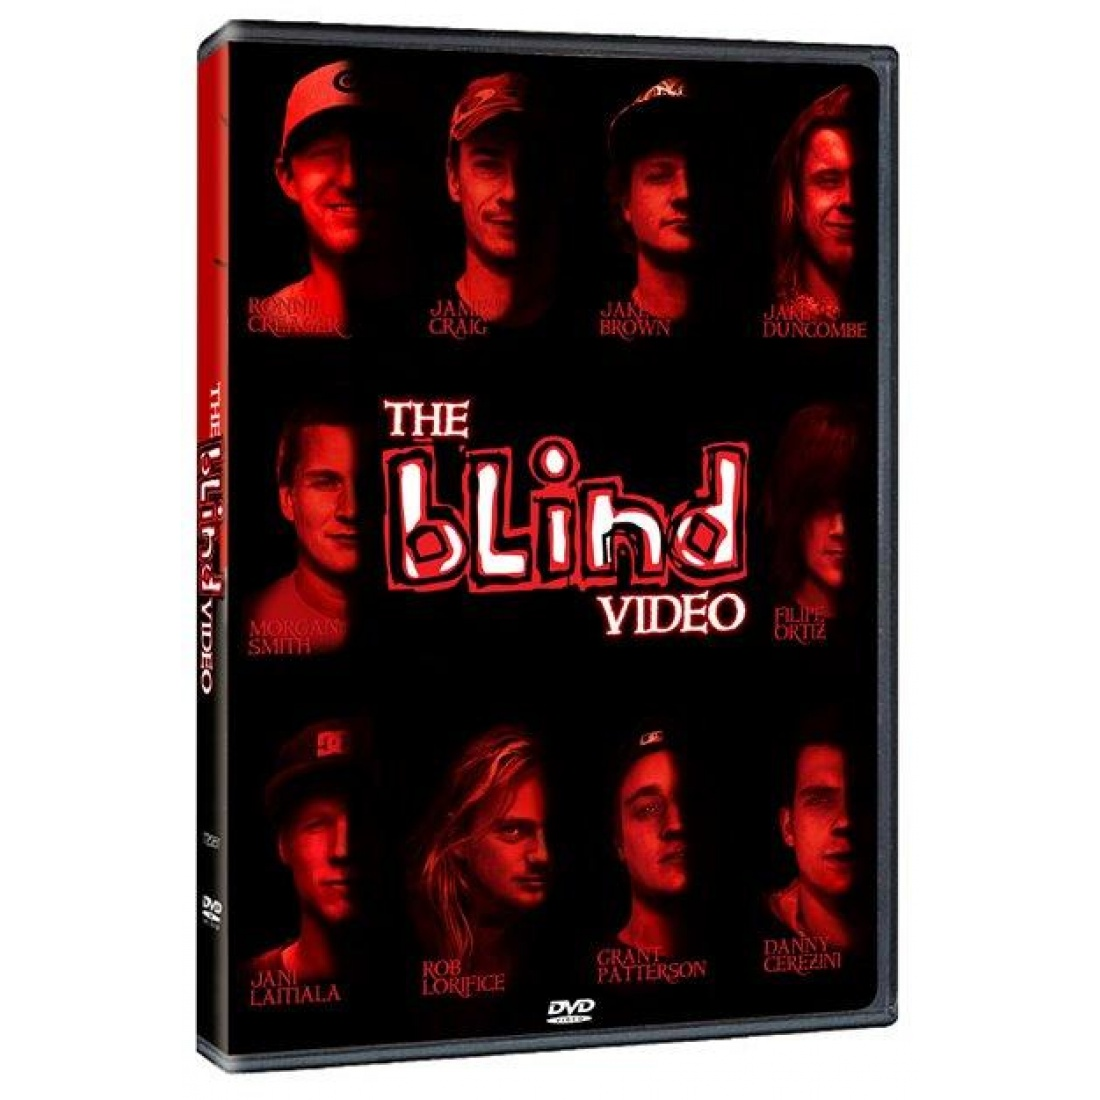 BLD-The Blind Video